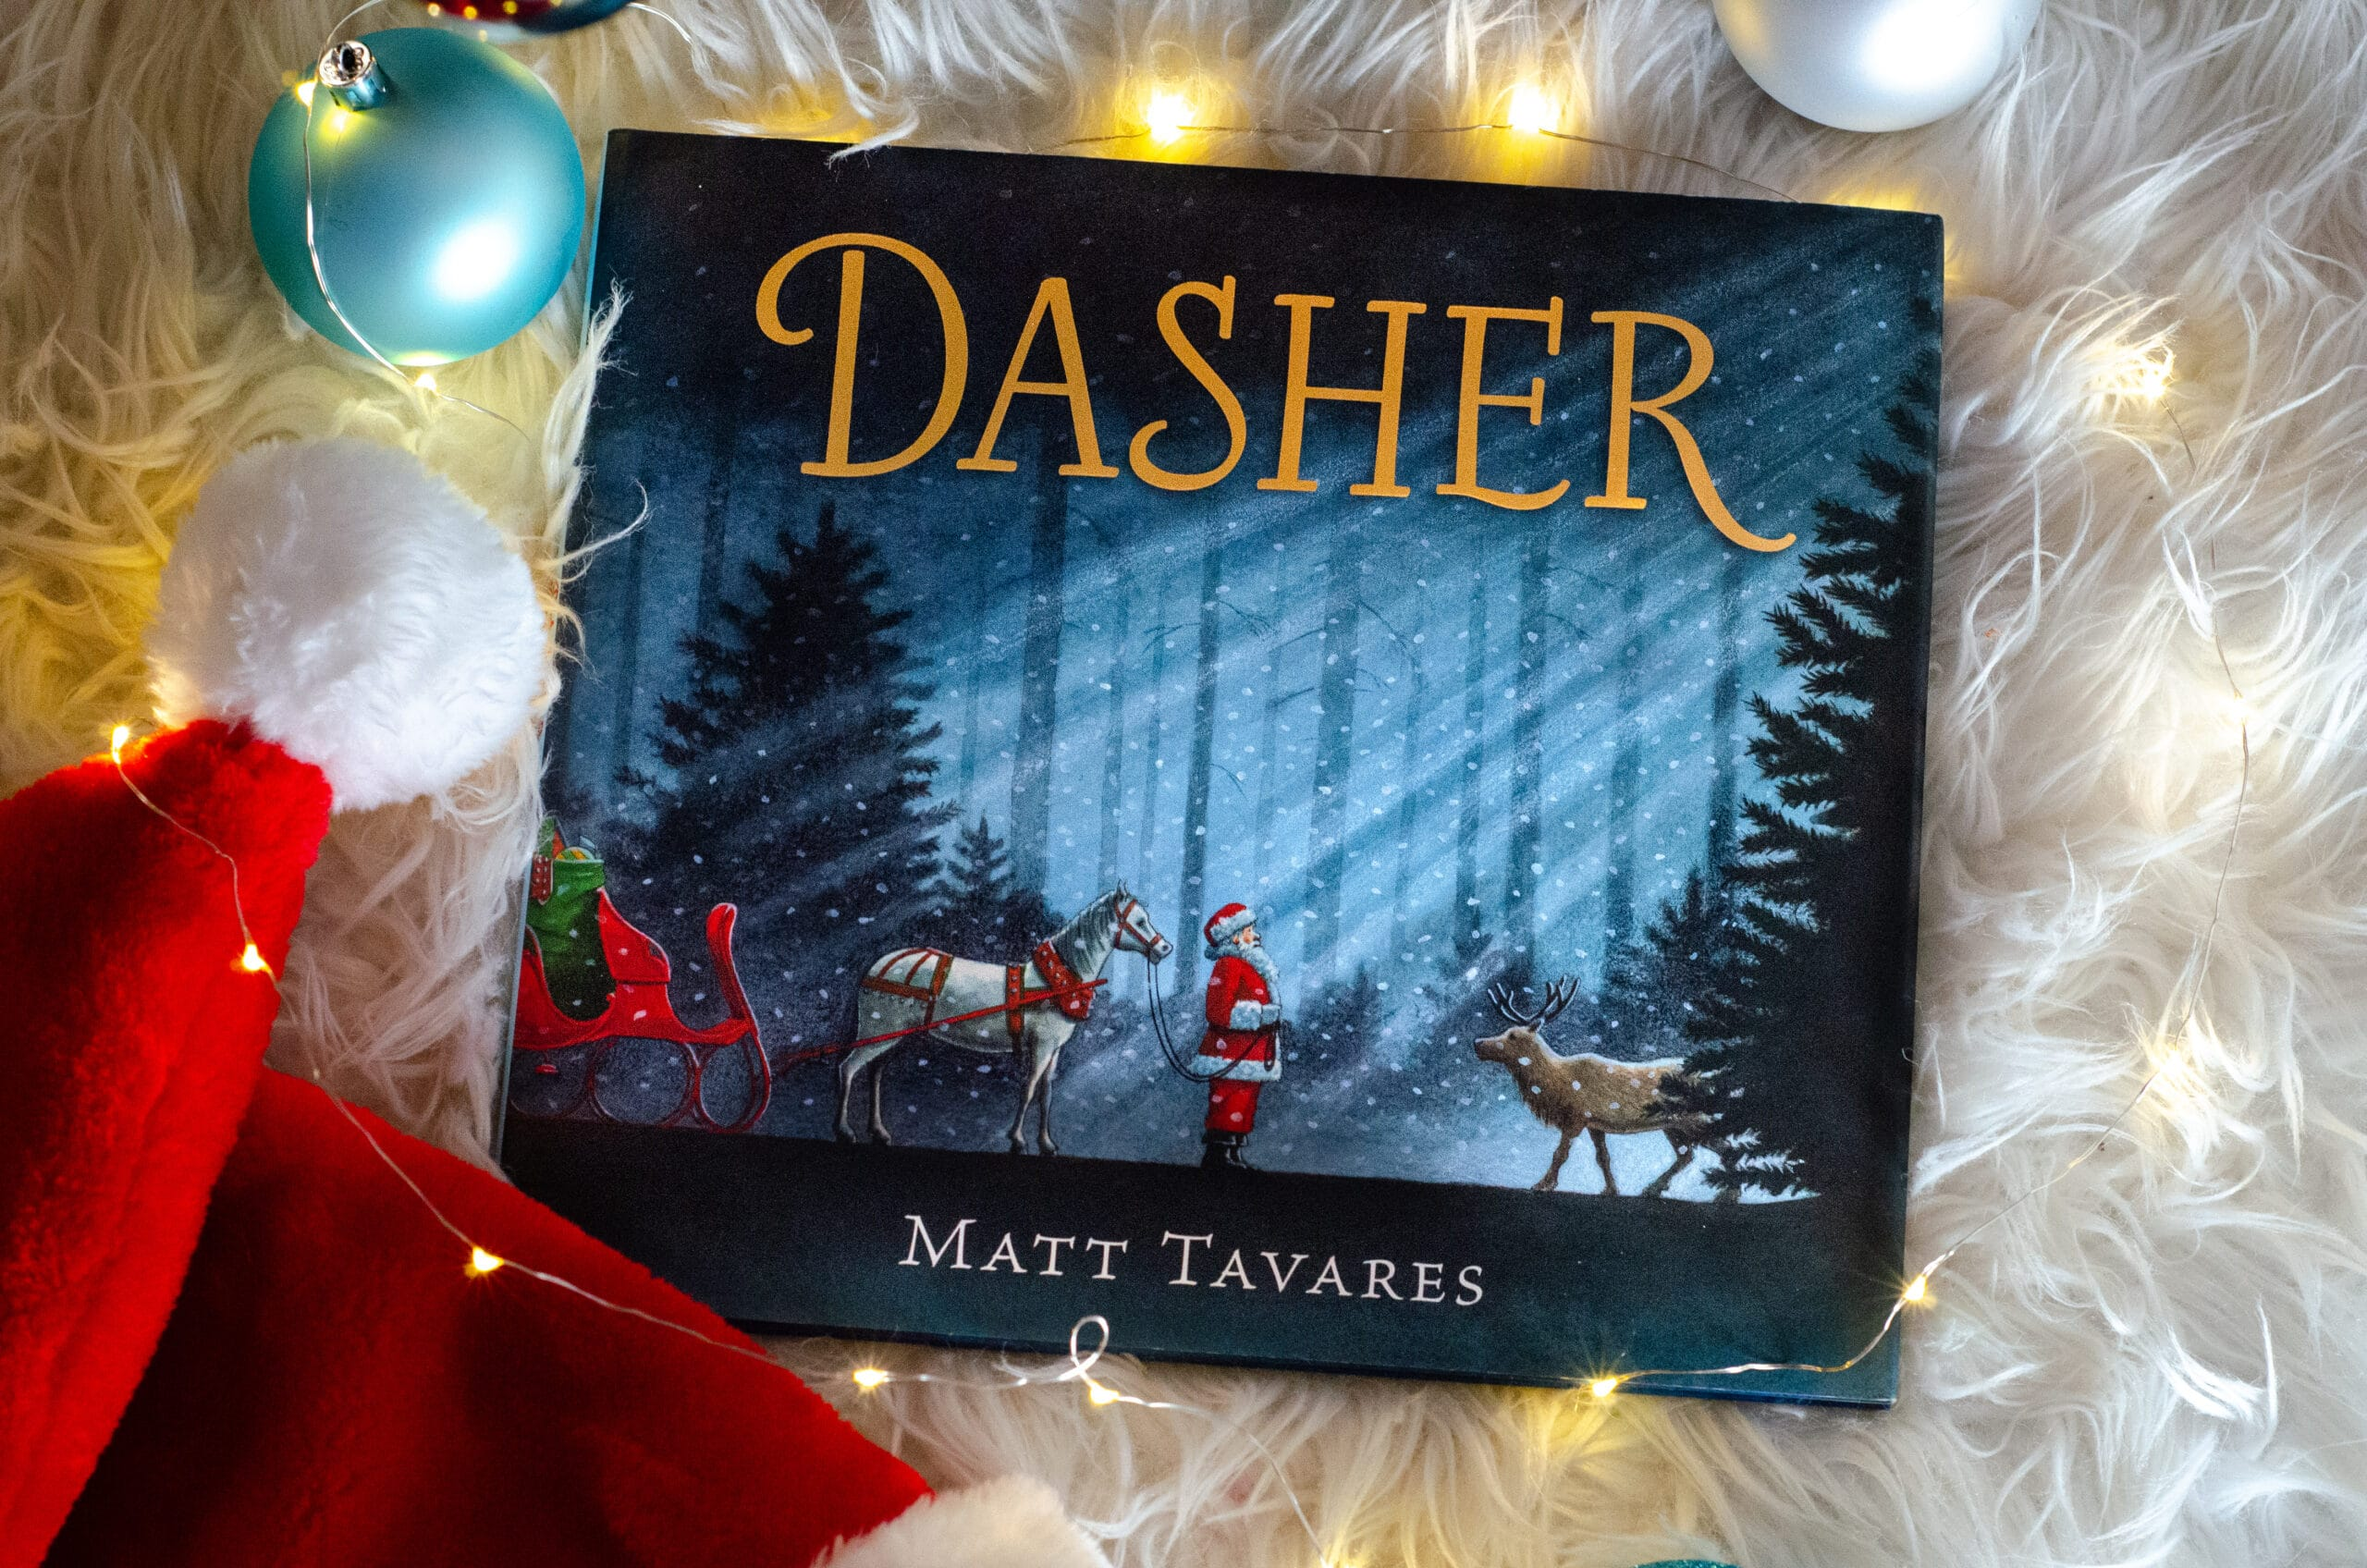 Dasher. Give the gift of literature this holiday season! These wonderful holiday books for kids make great stocking stuffer gifts. Create your very own Christmas Tree Advent Calander using these Children's holiday books, simply stack them into a tree for a new fun holiday tradition.